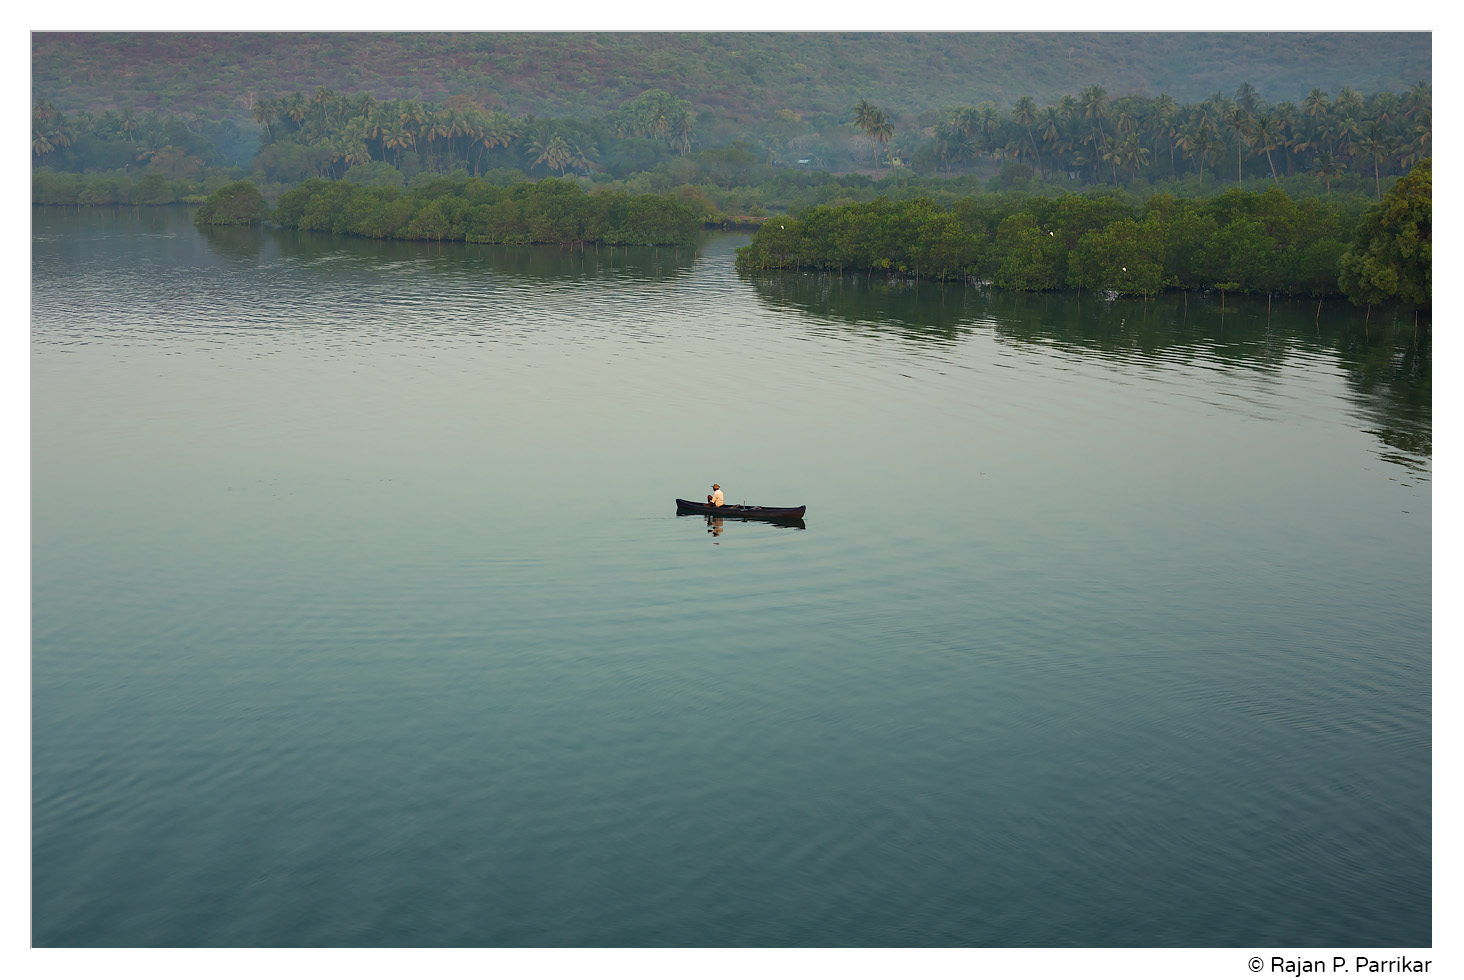 Lone fisherman on Chapora river in Siolim, Goa